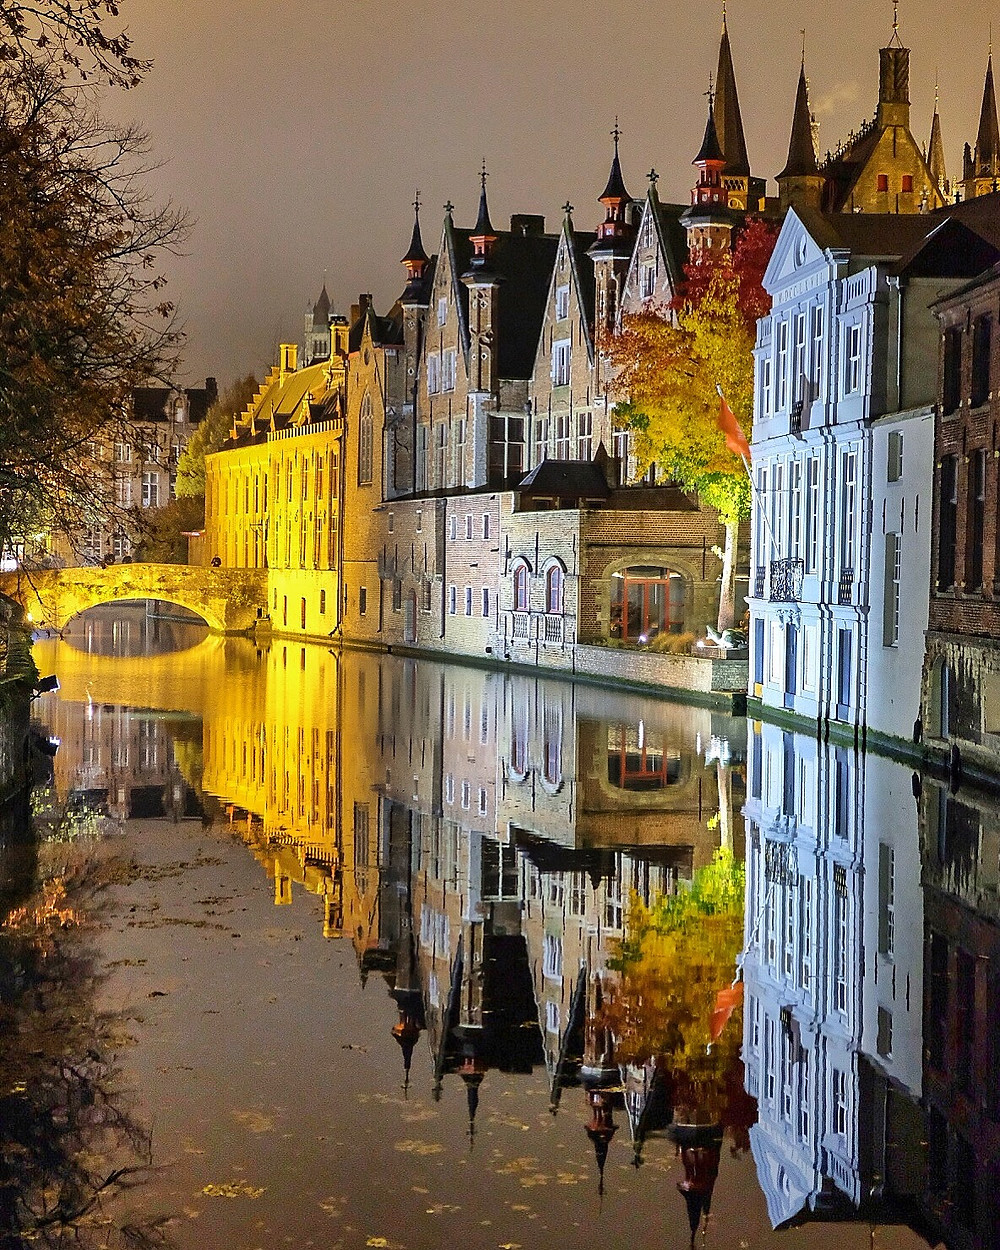 Canals by night in Bruges